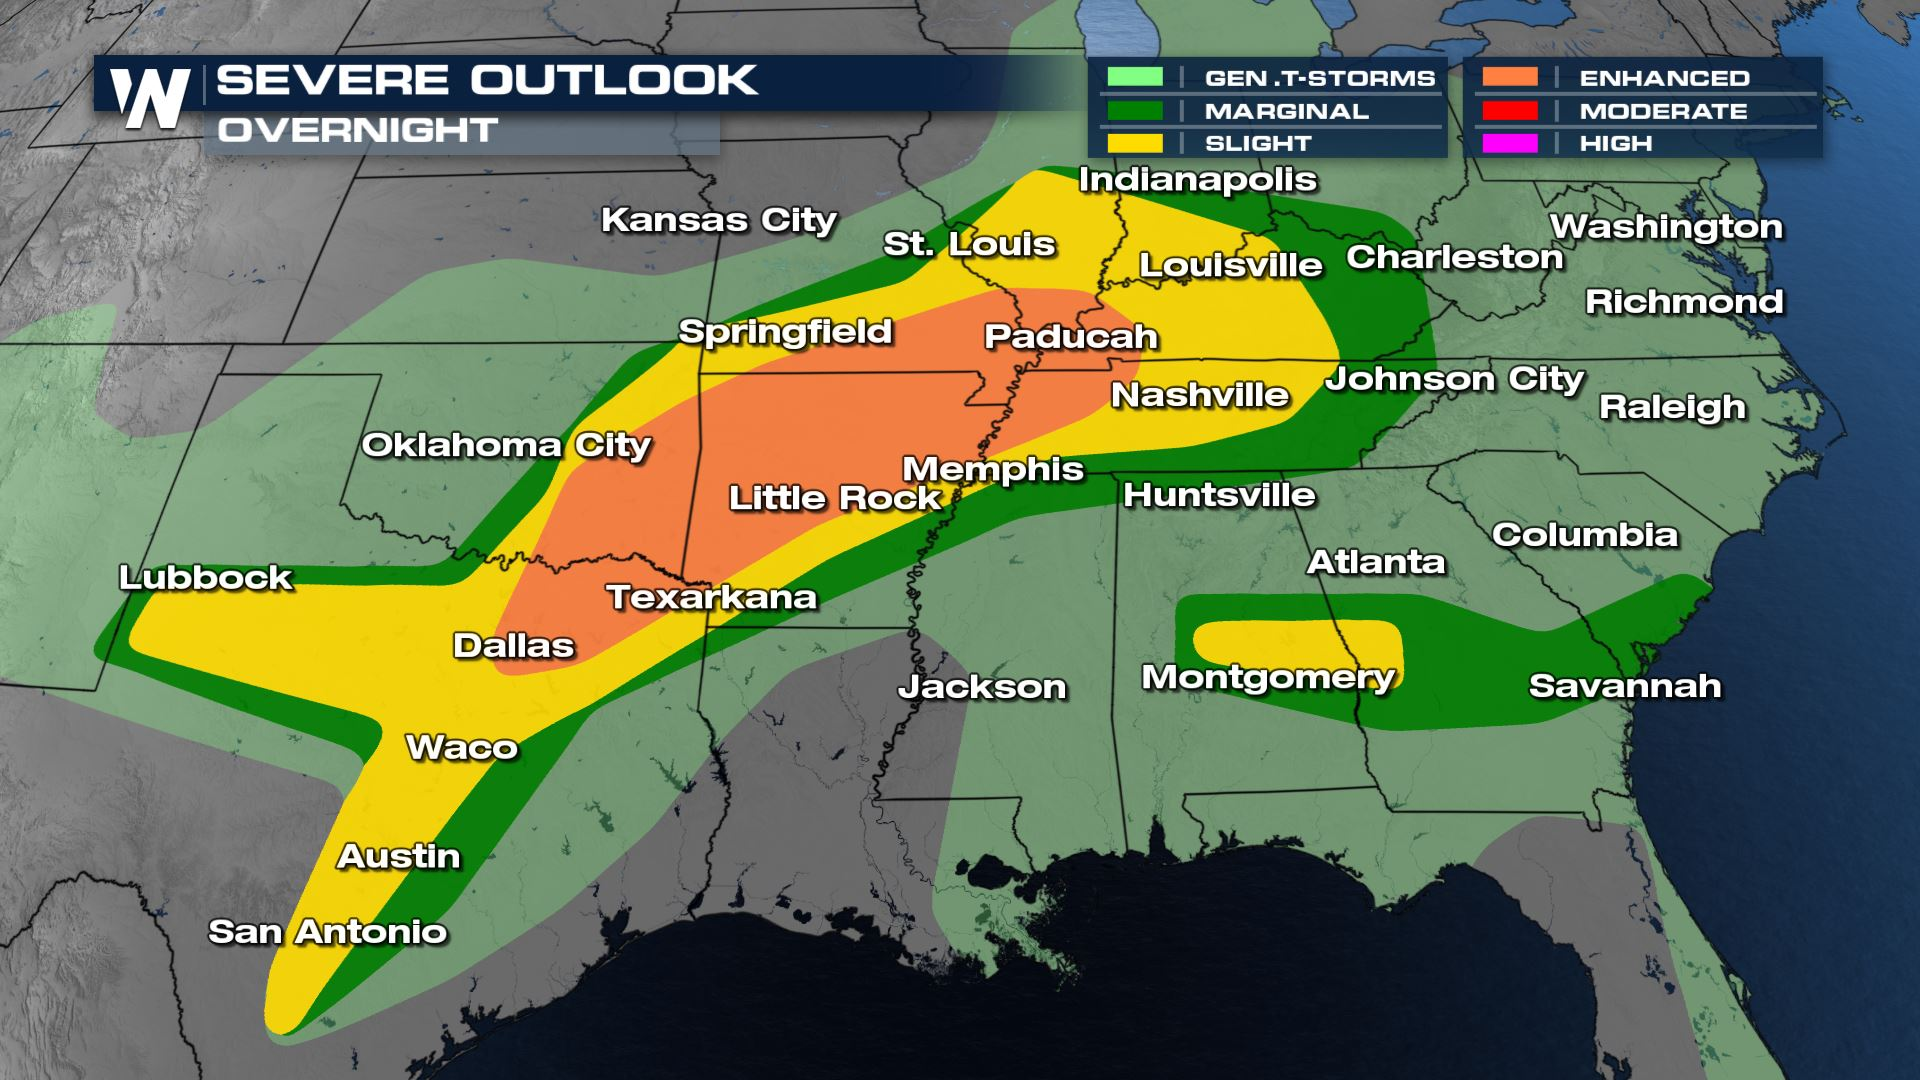 Severe Storms From the Midwest to the South Overnight